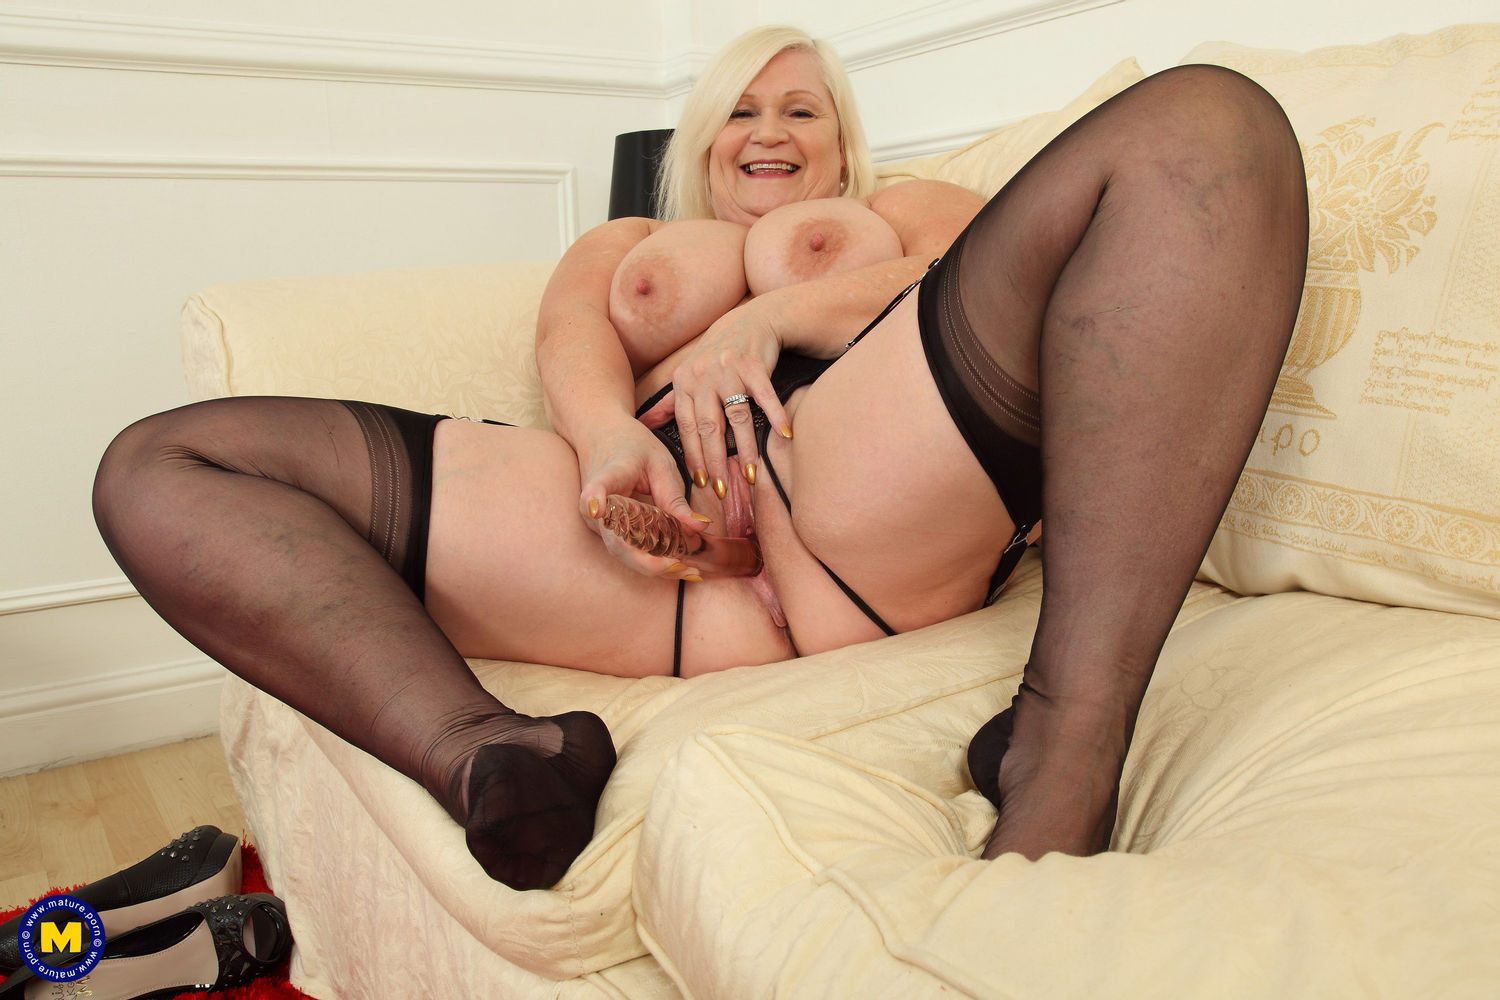 big breasted curvy British housewife plugs hairy pussy with a big toy in nylon stockings and und ...